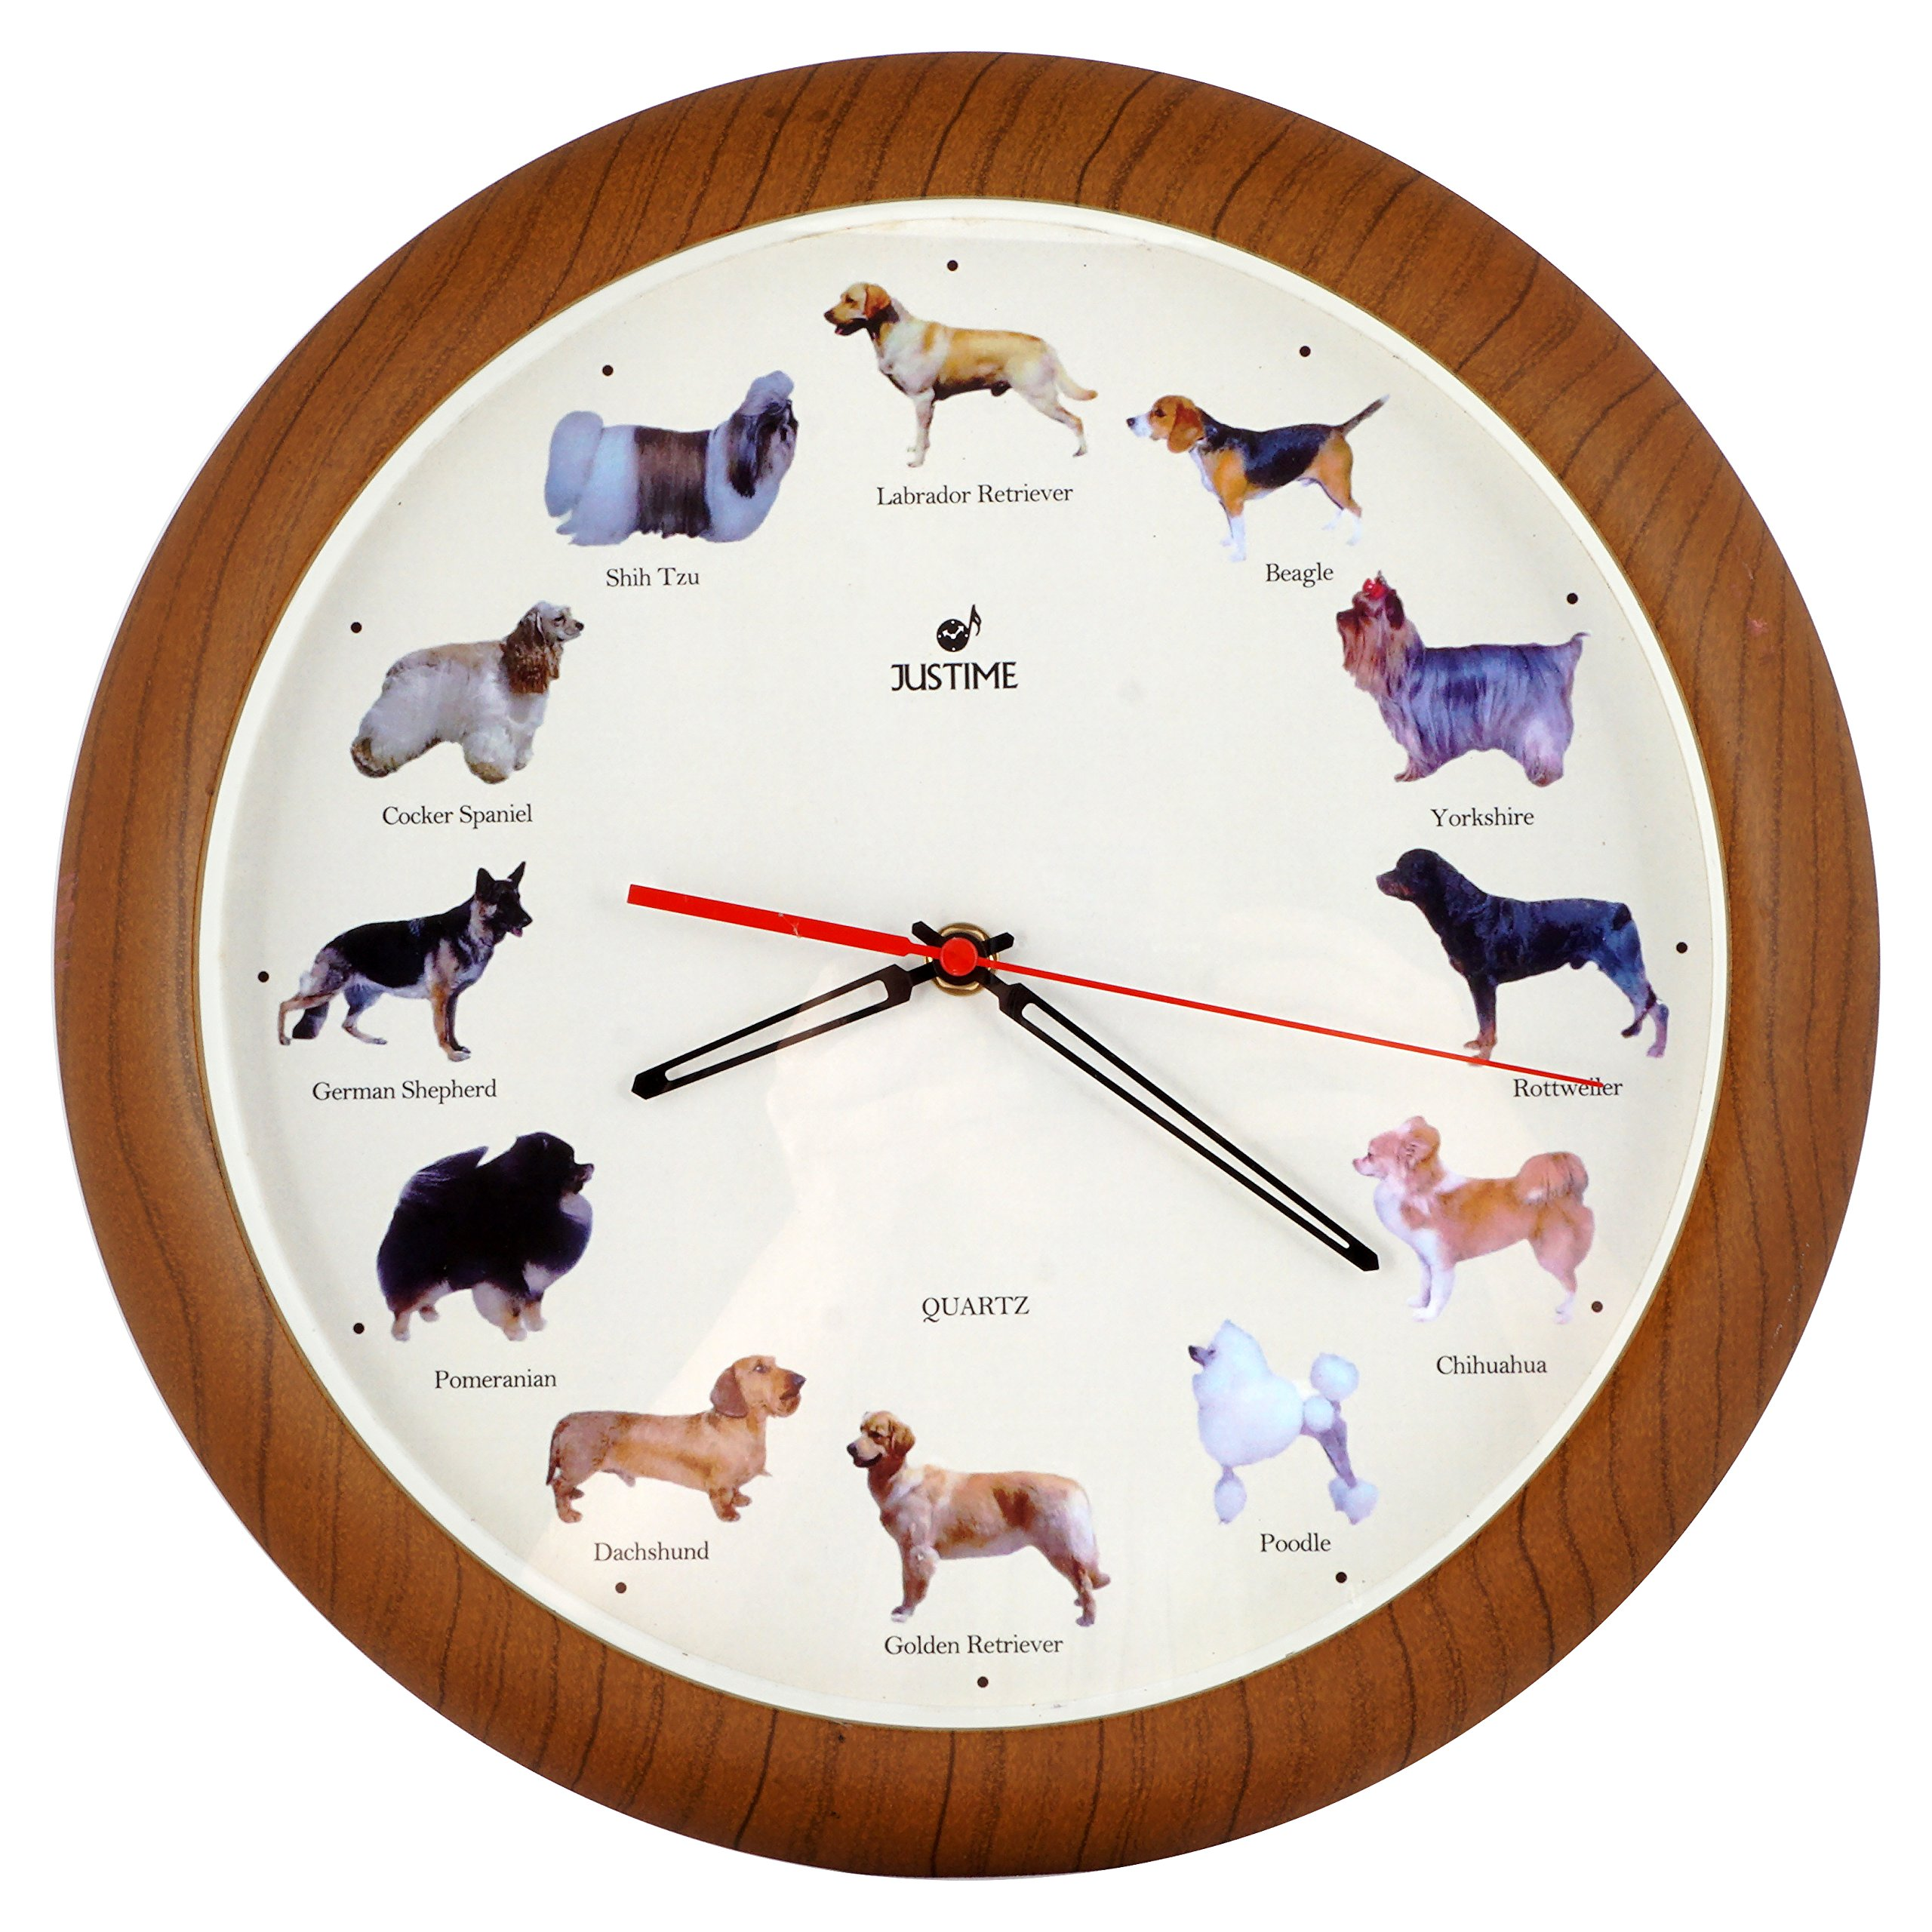 ISHIWA 14-inch Unique Animals Family Quality Wall Clock Silent Non-ticking Movement, Home Decor (W82057 Dogs) by ISHIWA (Image #1)